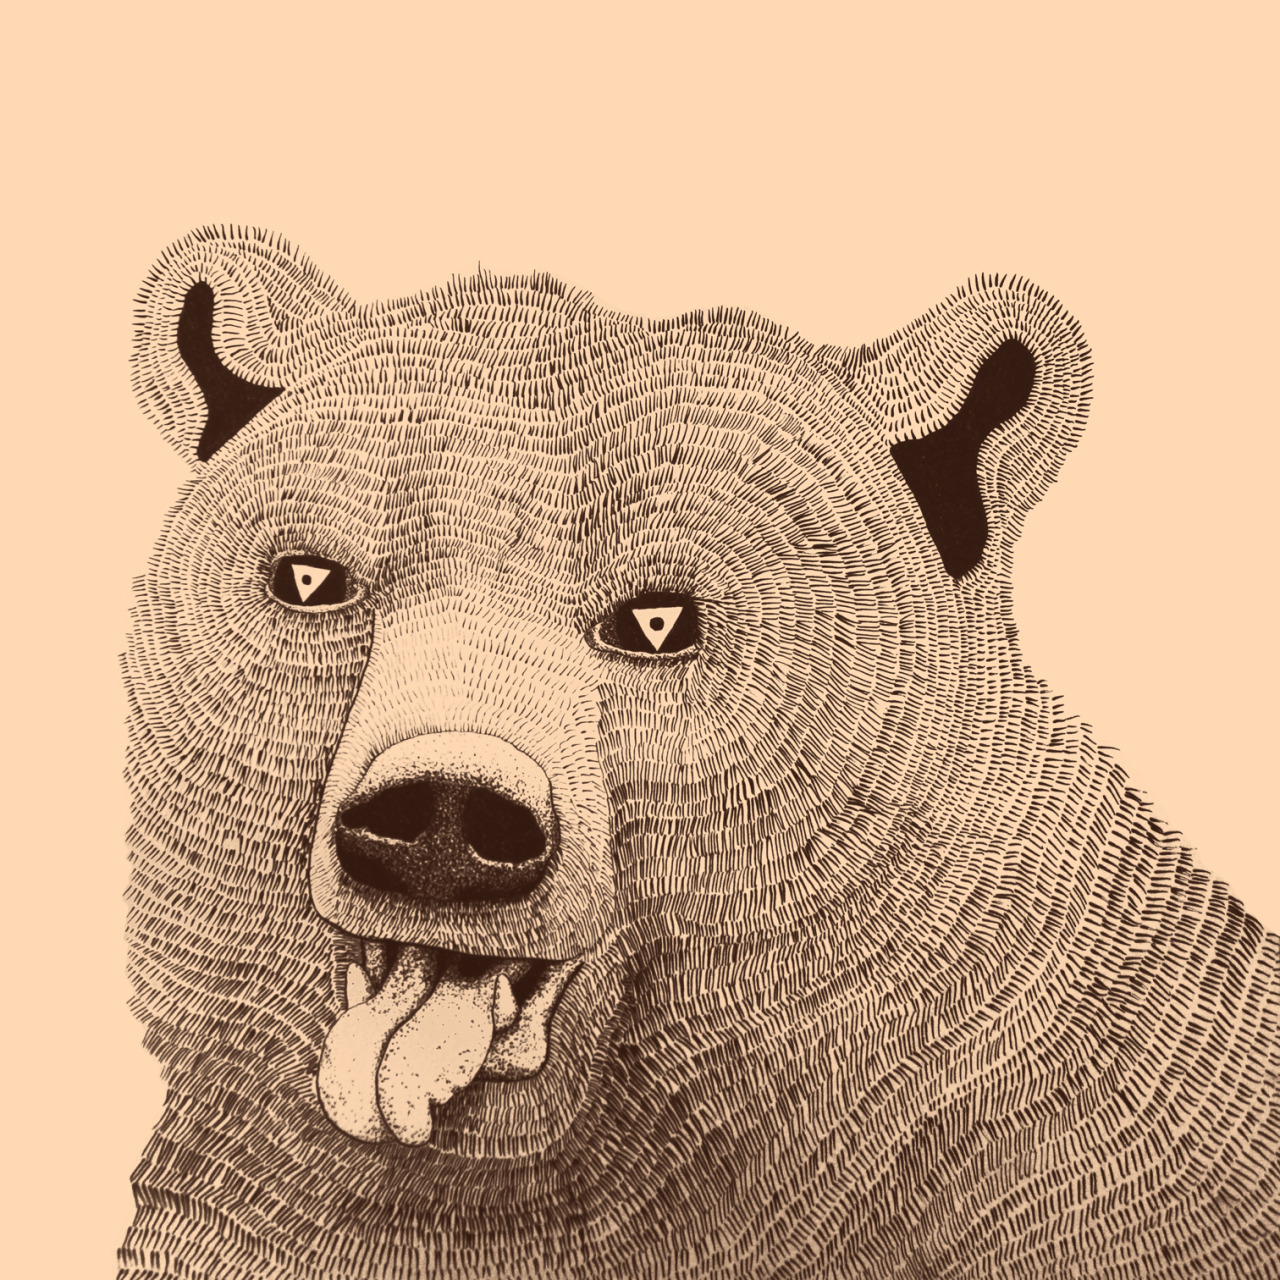 hungry bear. drawing by geirarne/ballad of the dyeing dart frog 2013